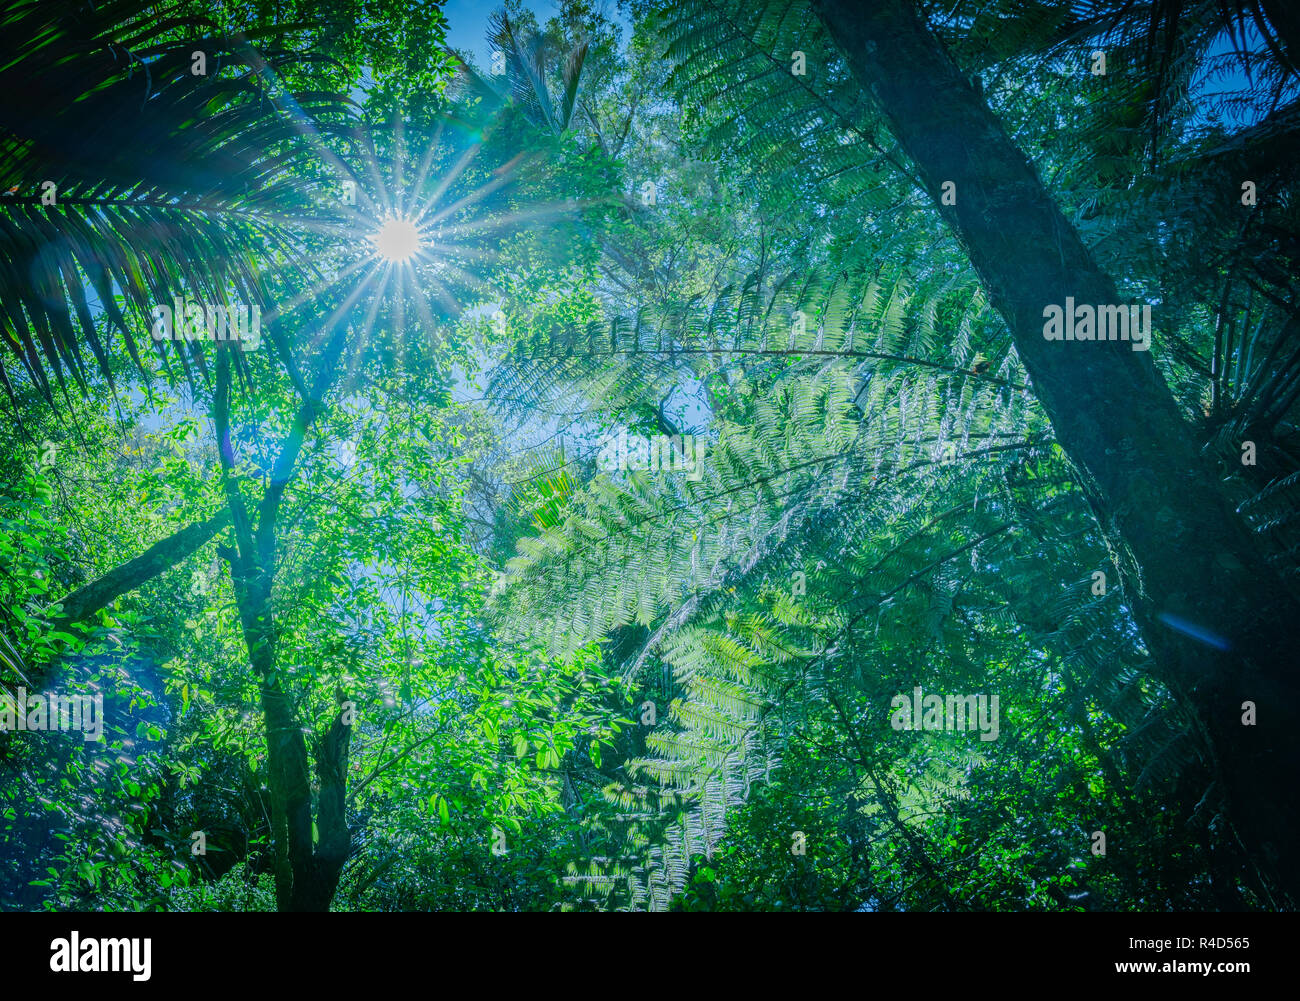 Retro effect blue tinge with lens flare through overhead branches and silhouette fern fronds along The Grove native bush walk near Pohara South Island - Stock Image